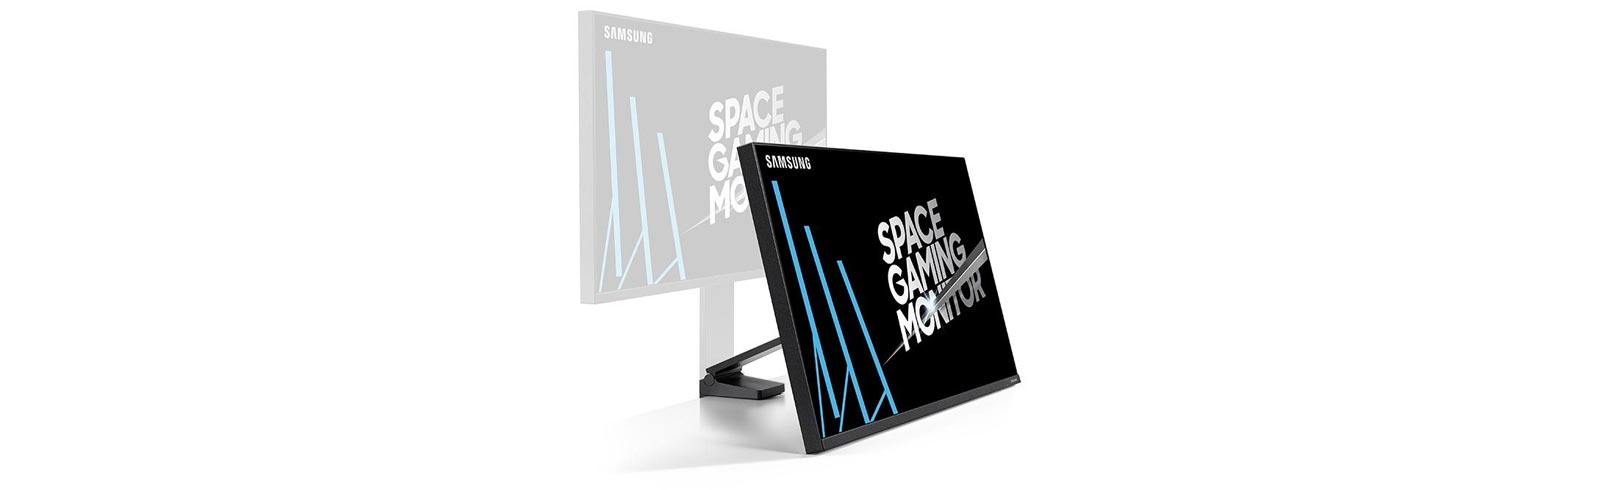 Samsung S32R750Q space-saving gaming monitor full specifications appear